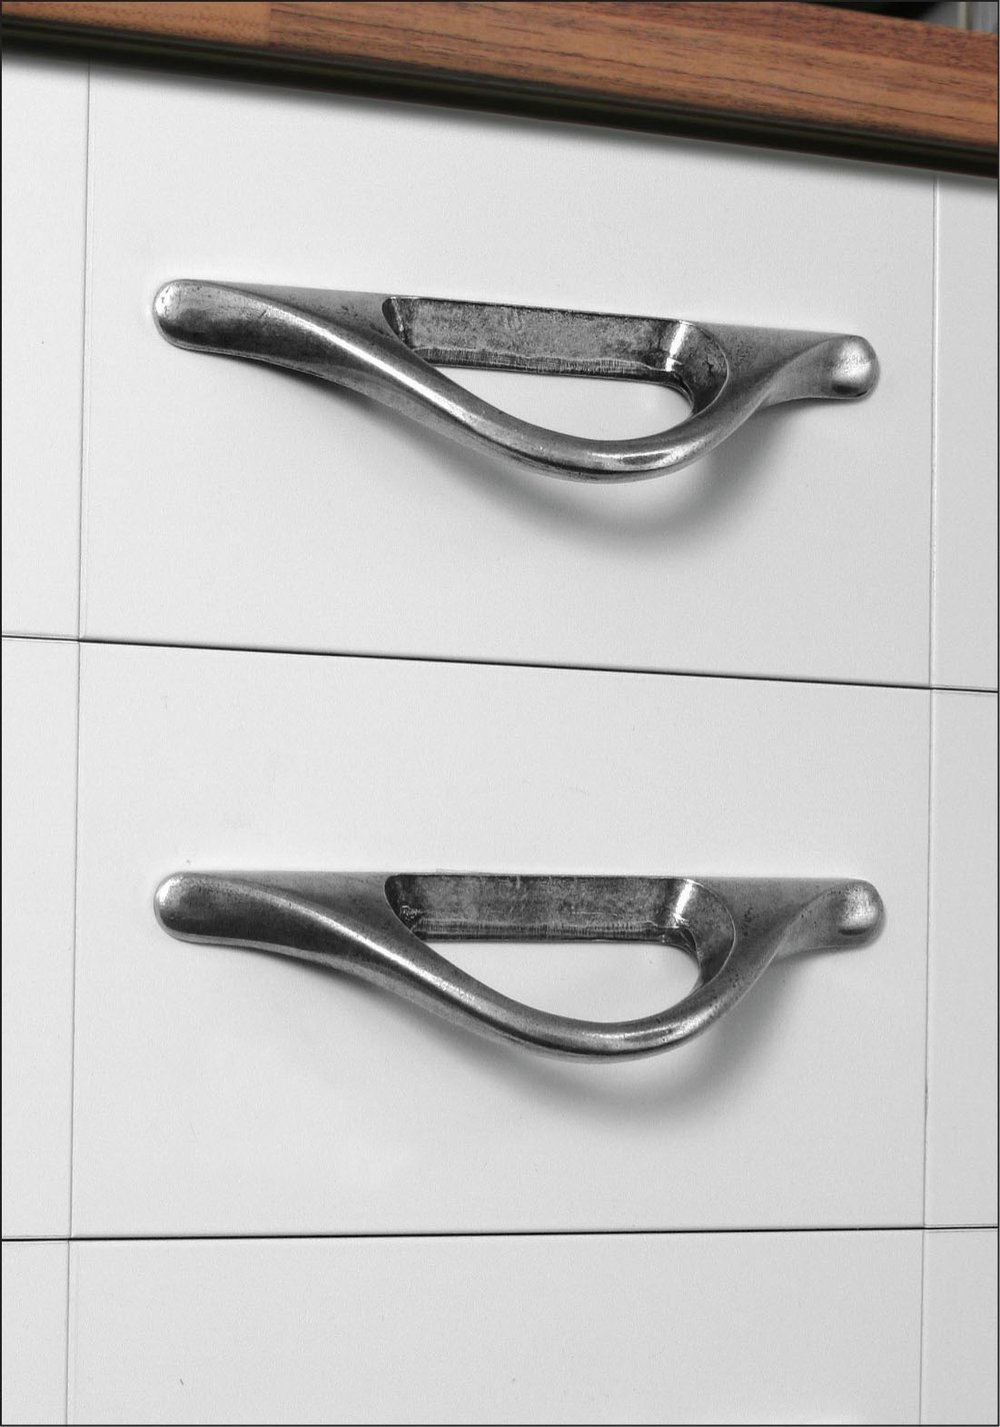 Sculptural Manzoni drawer pulls from Ashley Norton.